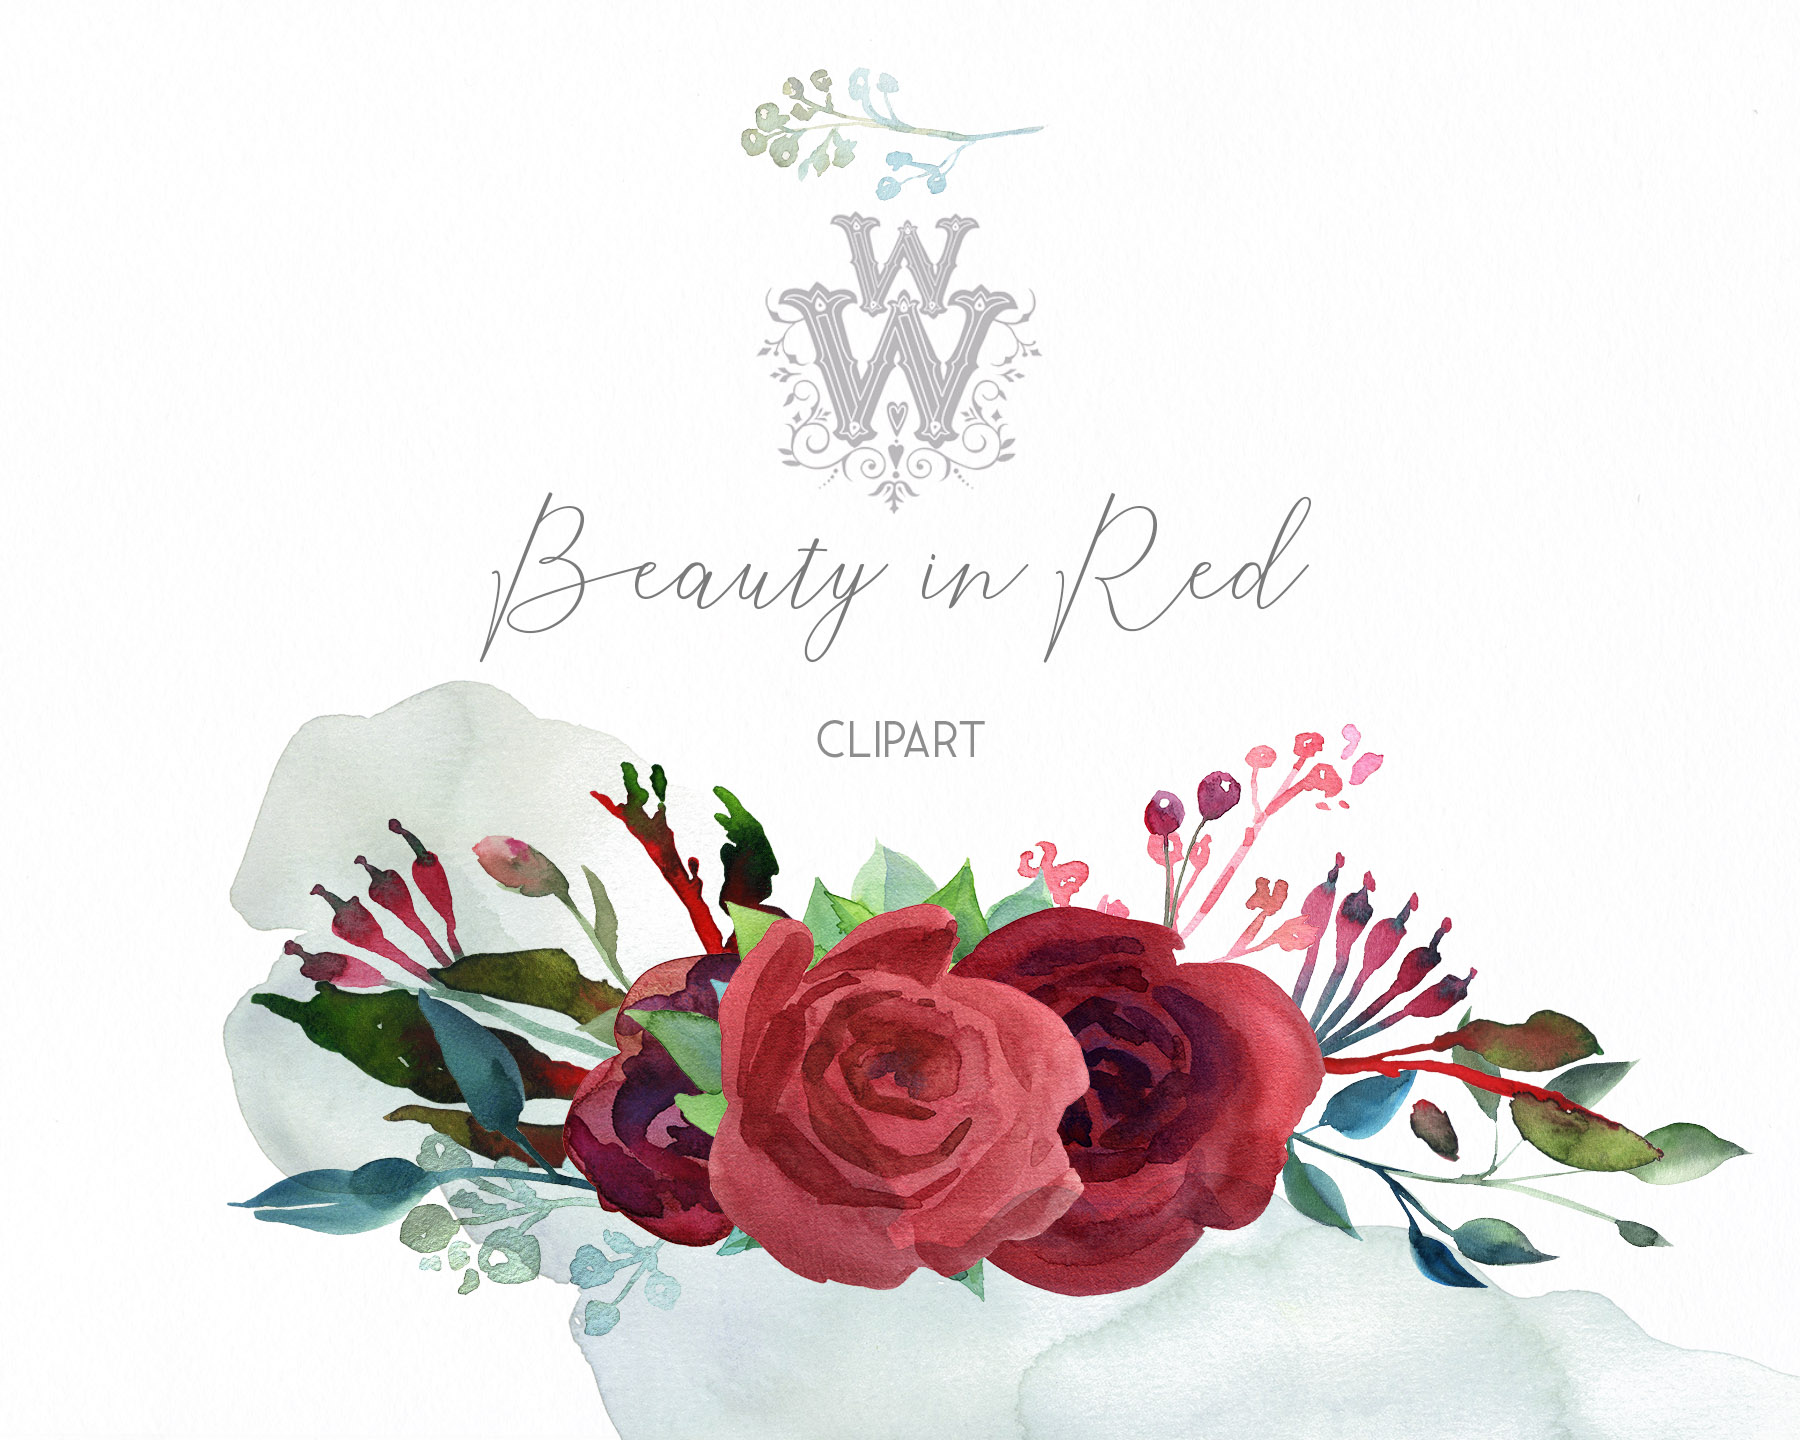 Watercolor red rose flowers wedding clipart, boho pink peony example image 6